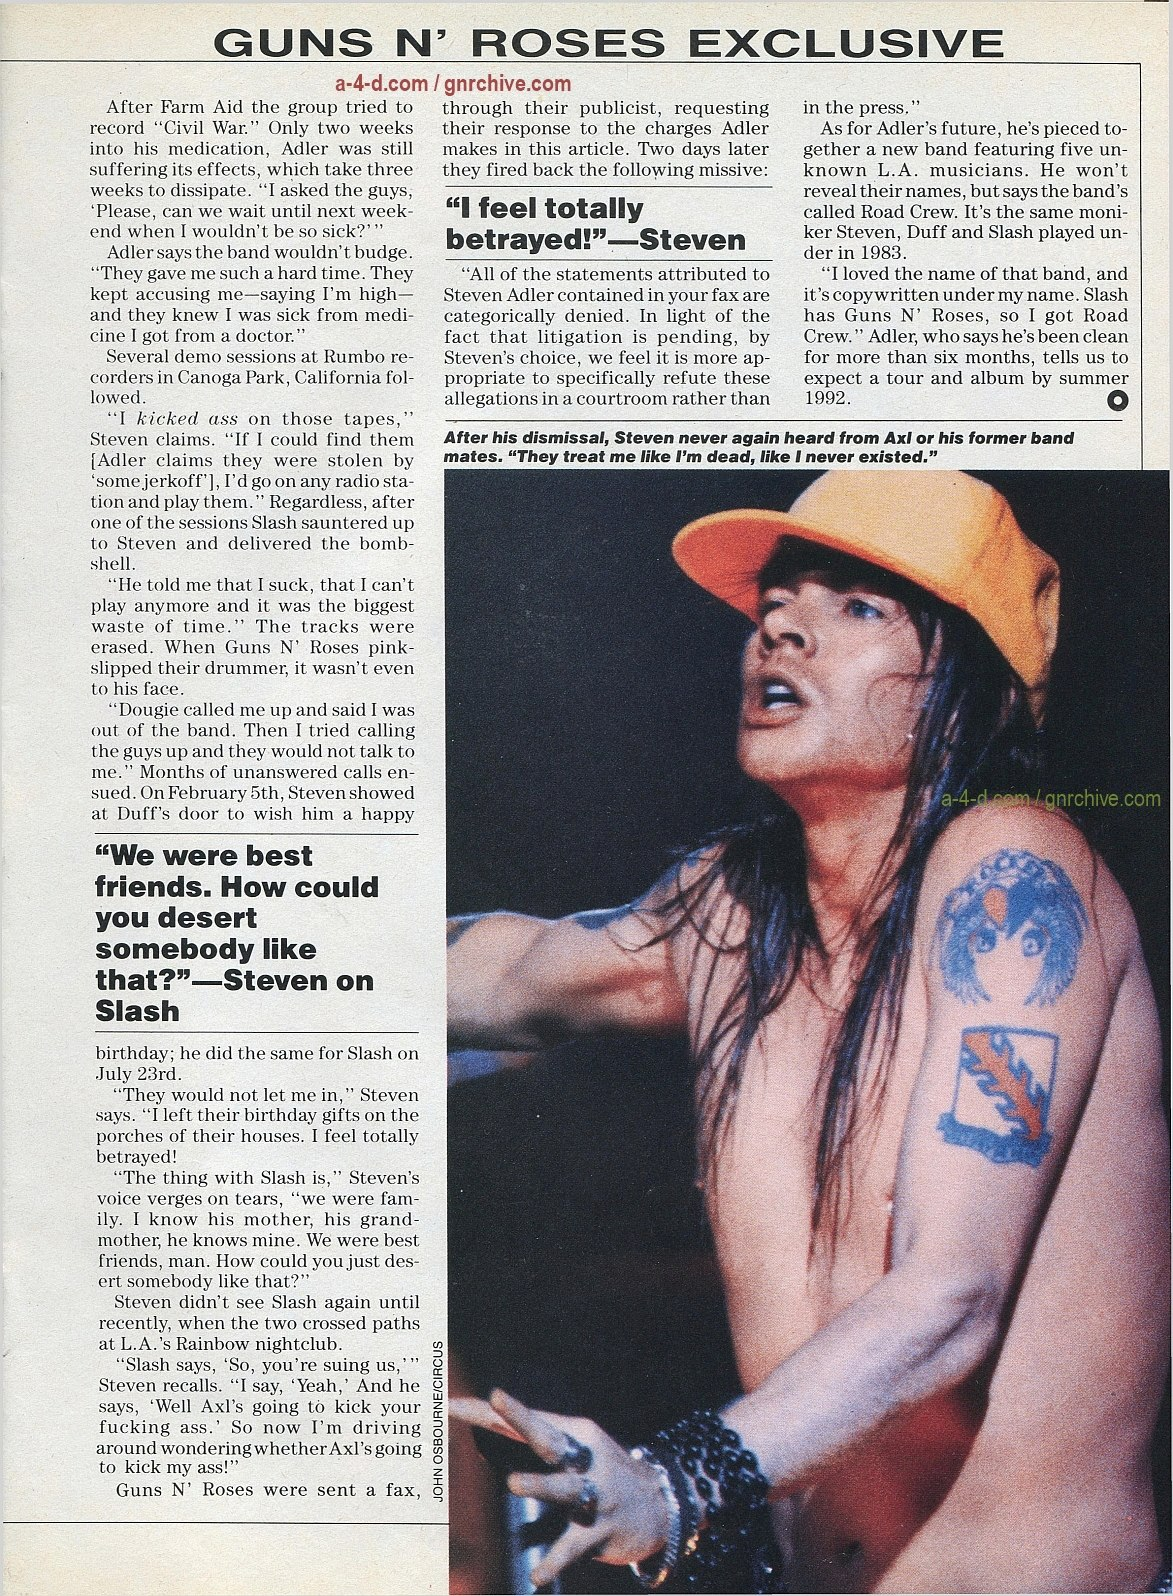 1991.10.31 - Circus - Axl Rose mocked/Fightin' words from Vince Neil 1991-115